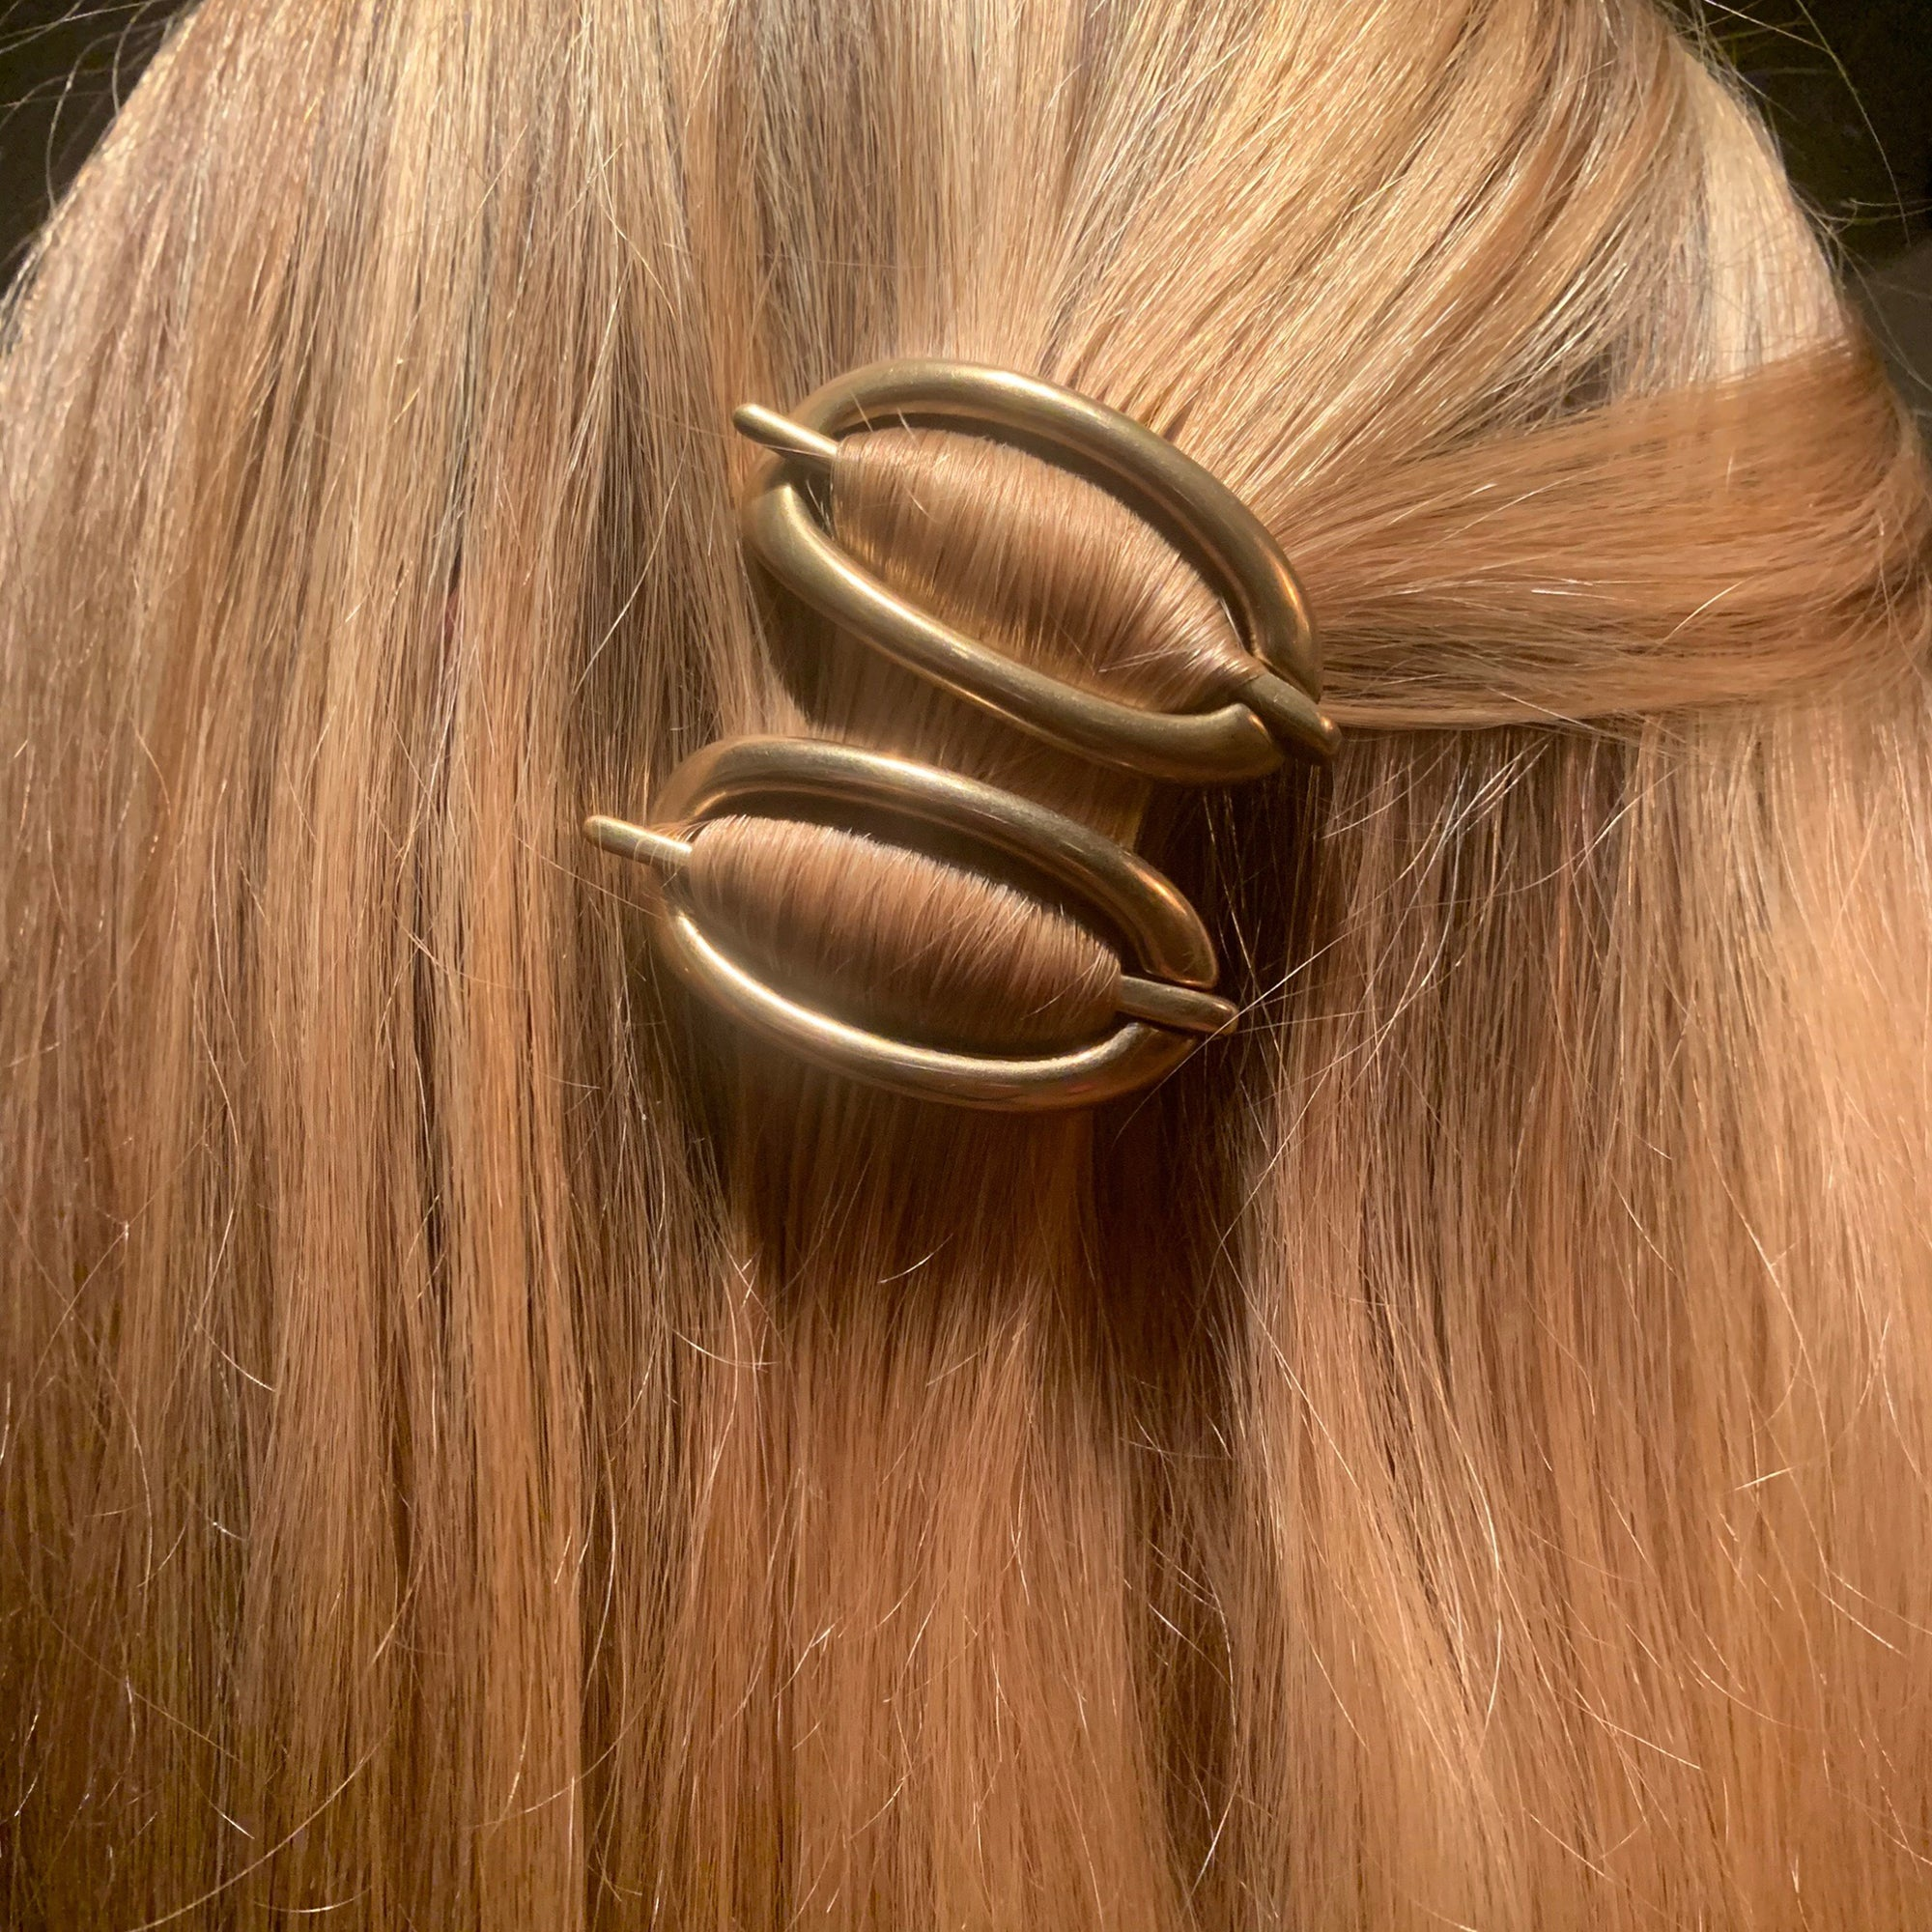 CLASSIC DANISH BARRETTE // PAIR // YELLOW BRONZE